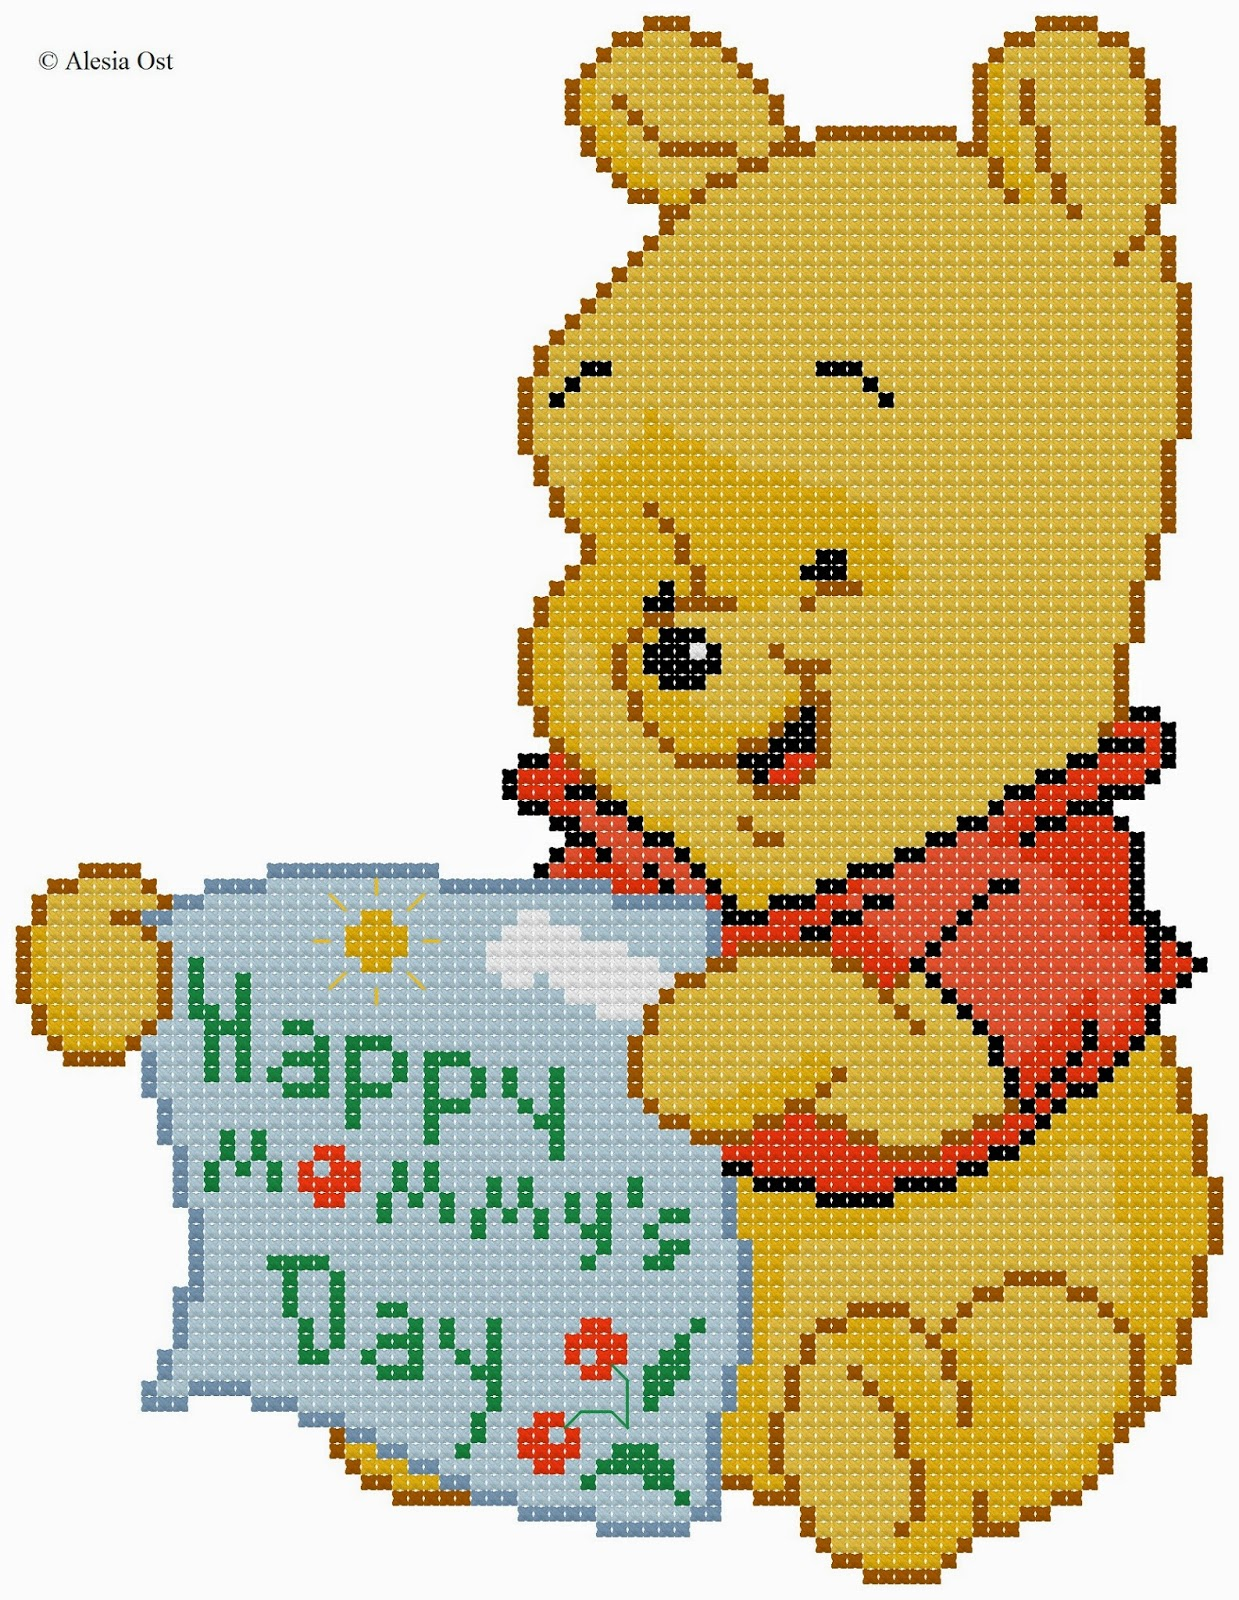 Free cross-stitch patterns, Winnie the Pooh, Disney, cartoon, bear, animal, Mother's Day, holiday, cross-stitch, back stitch, cross-stitch scheme, free pattern, x-stitchmagic.blogspot.it, вышивка крестиком, бесплатная схема, punto croce, schemi punto croce gratis, DMC, blocks, symbols